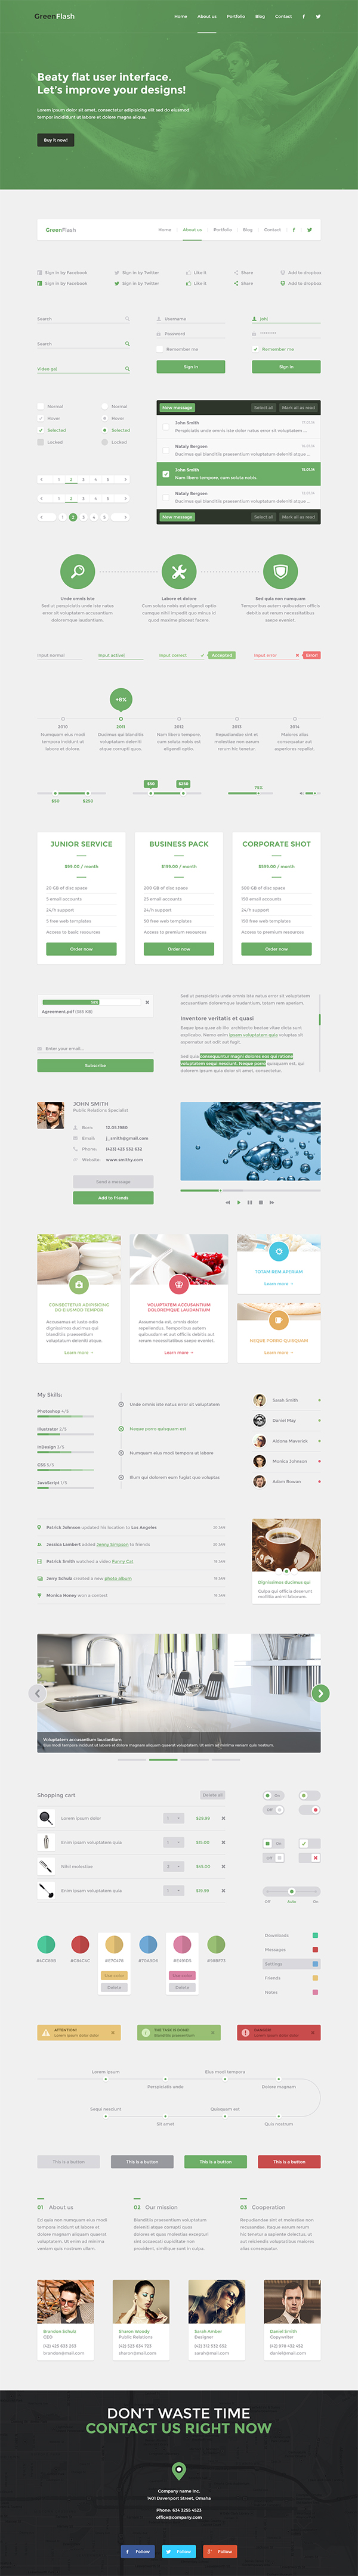 Green Flash UI PSD Kit